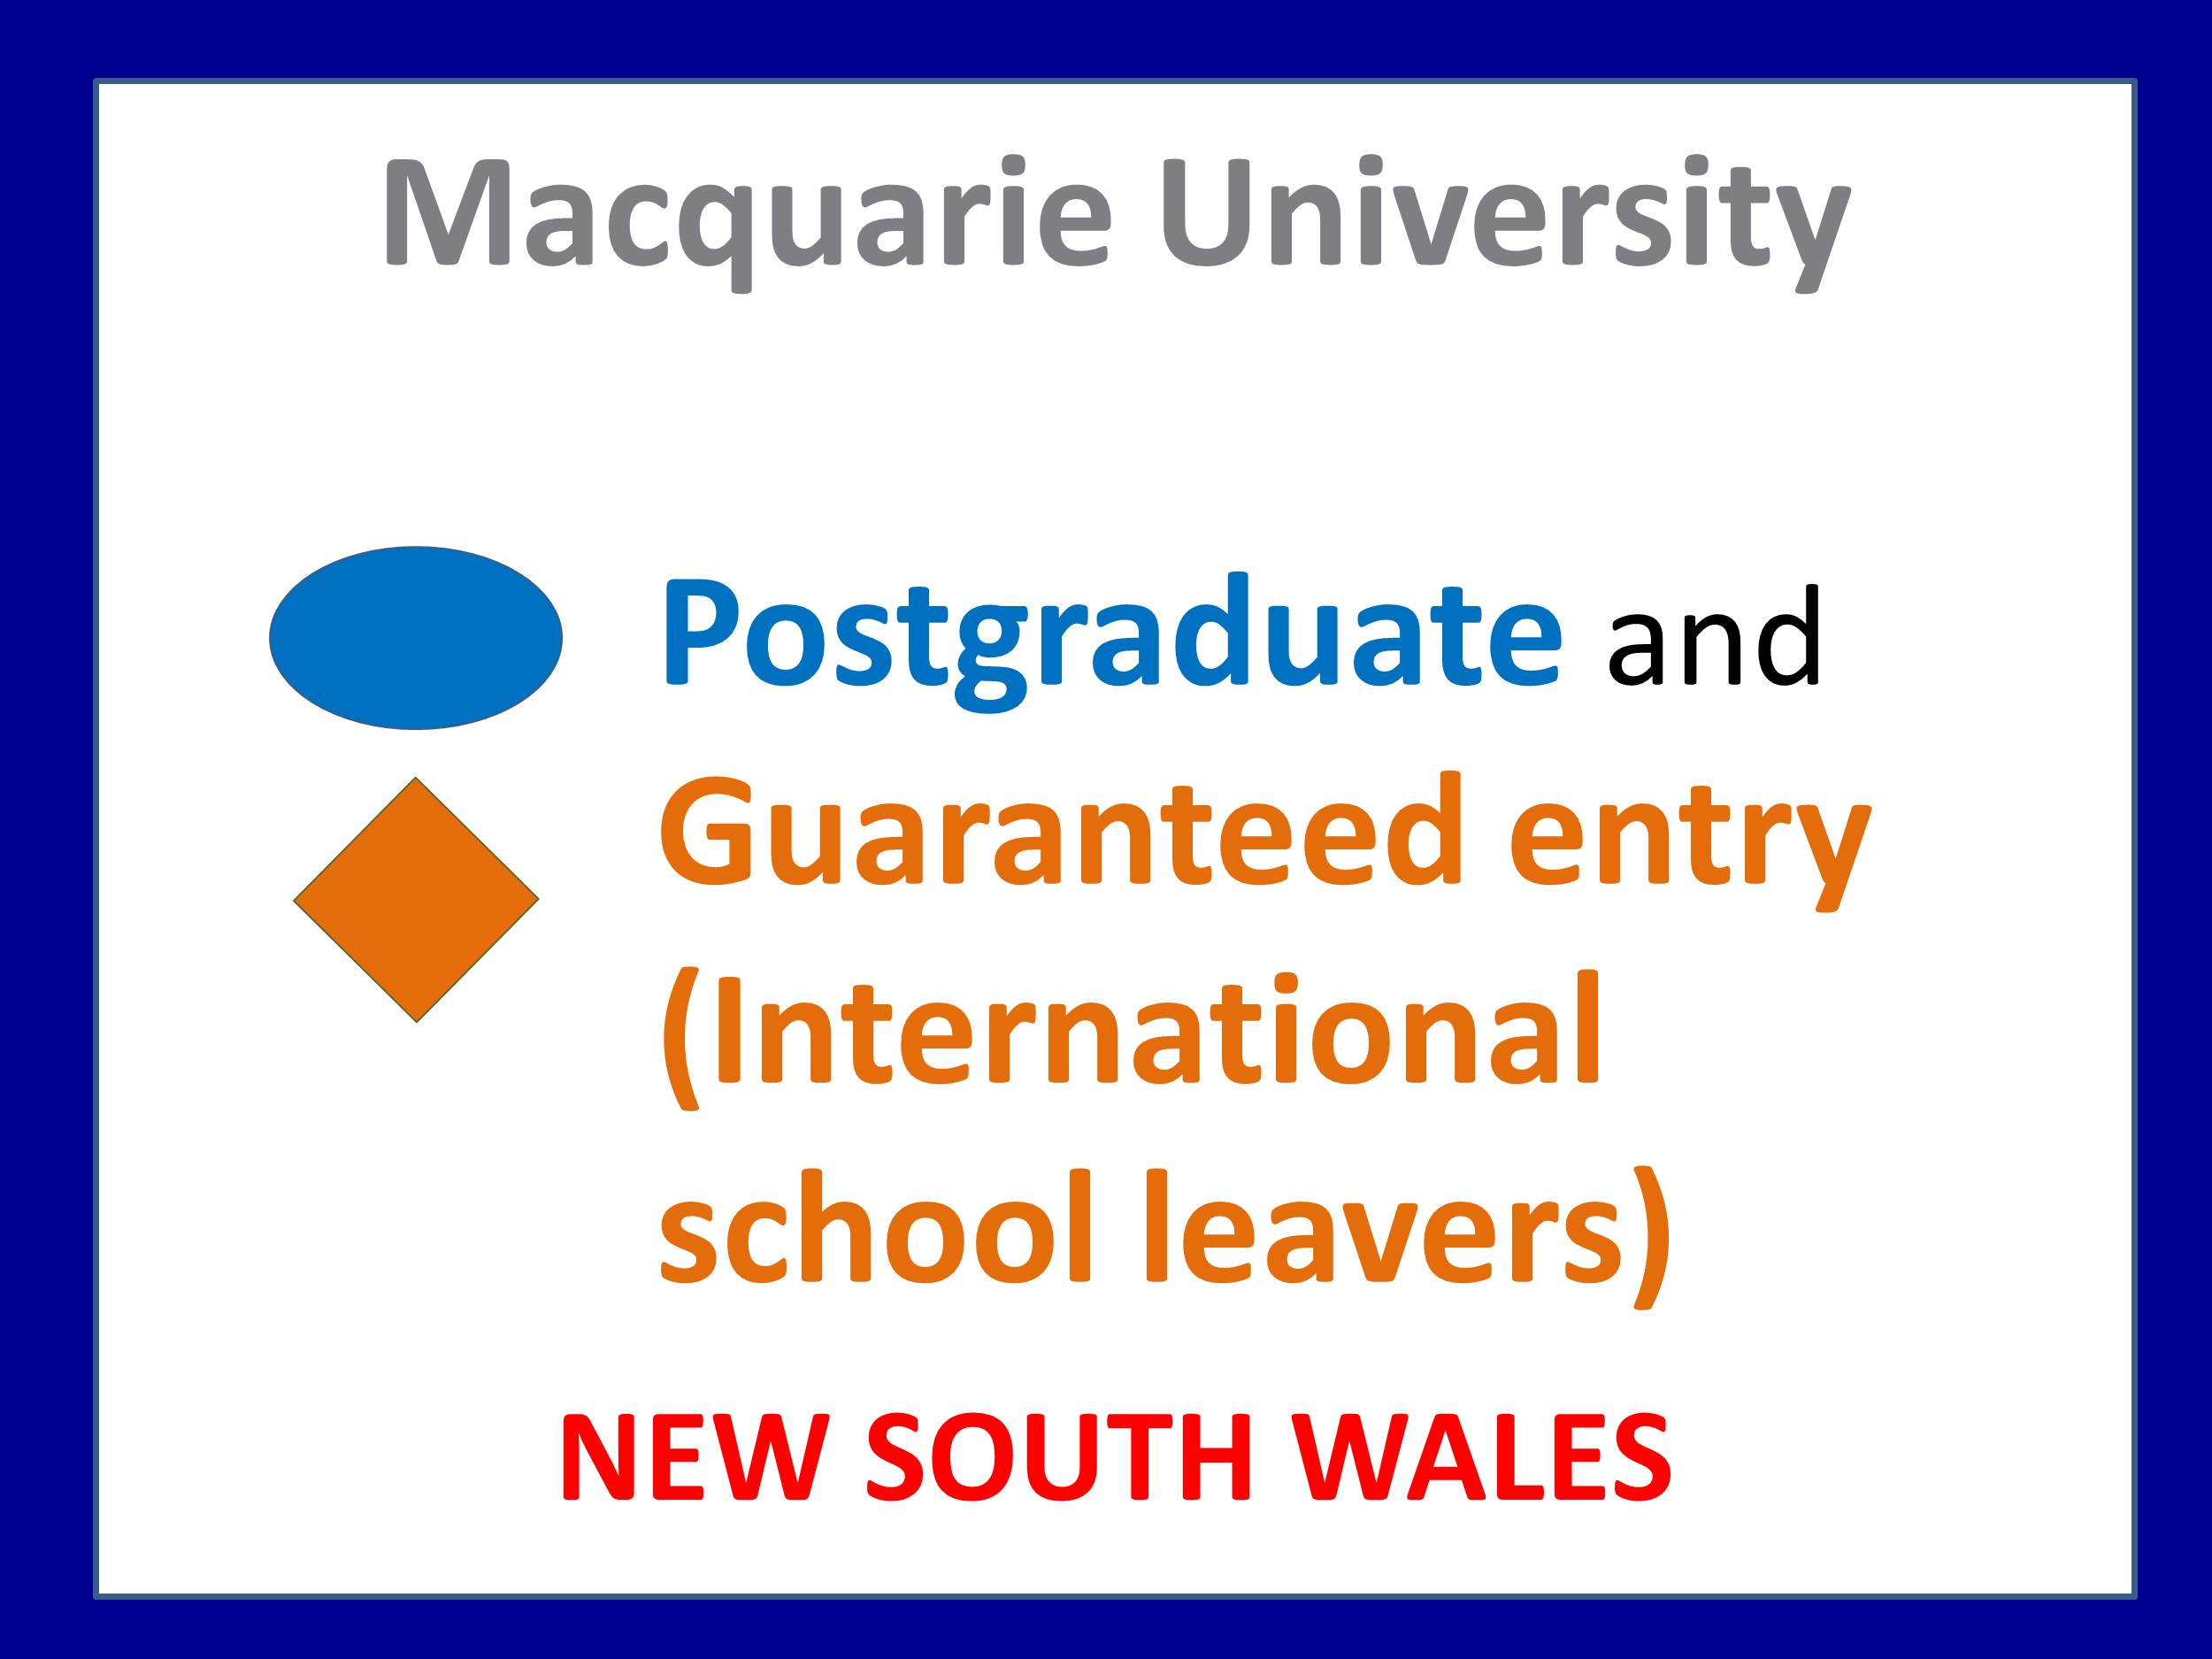 Macquarie University medicine